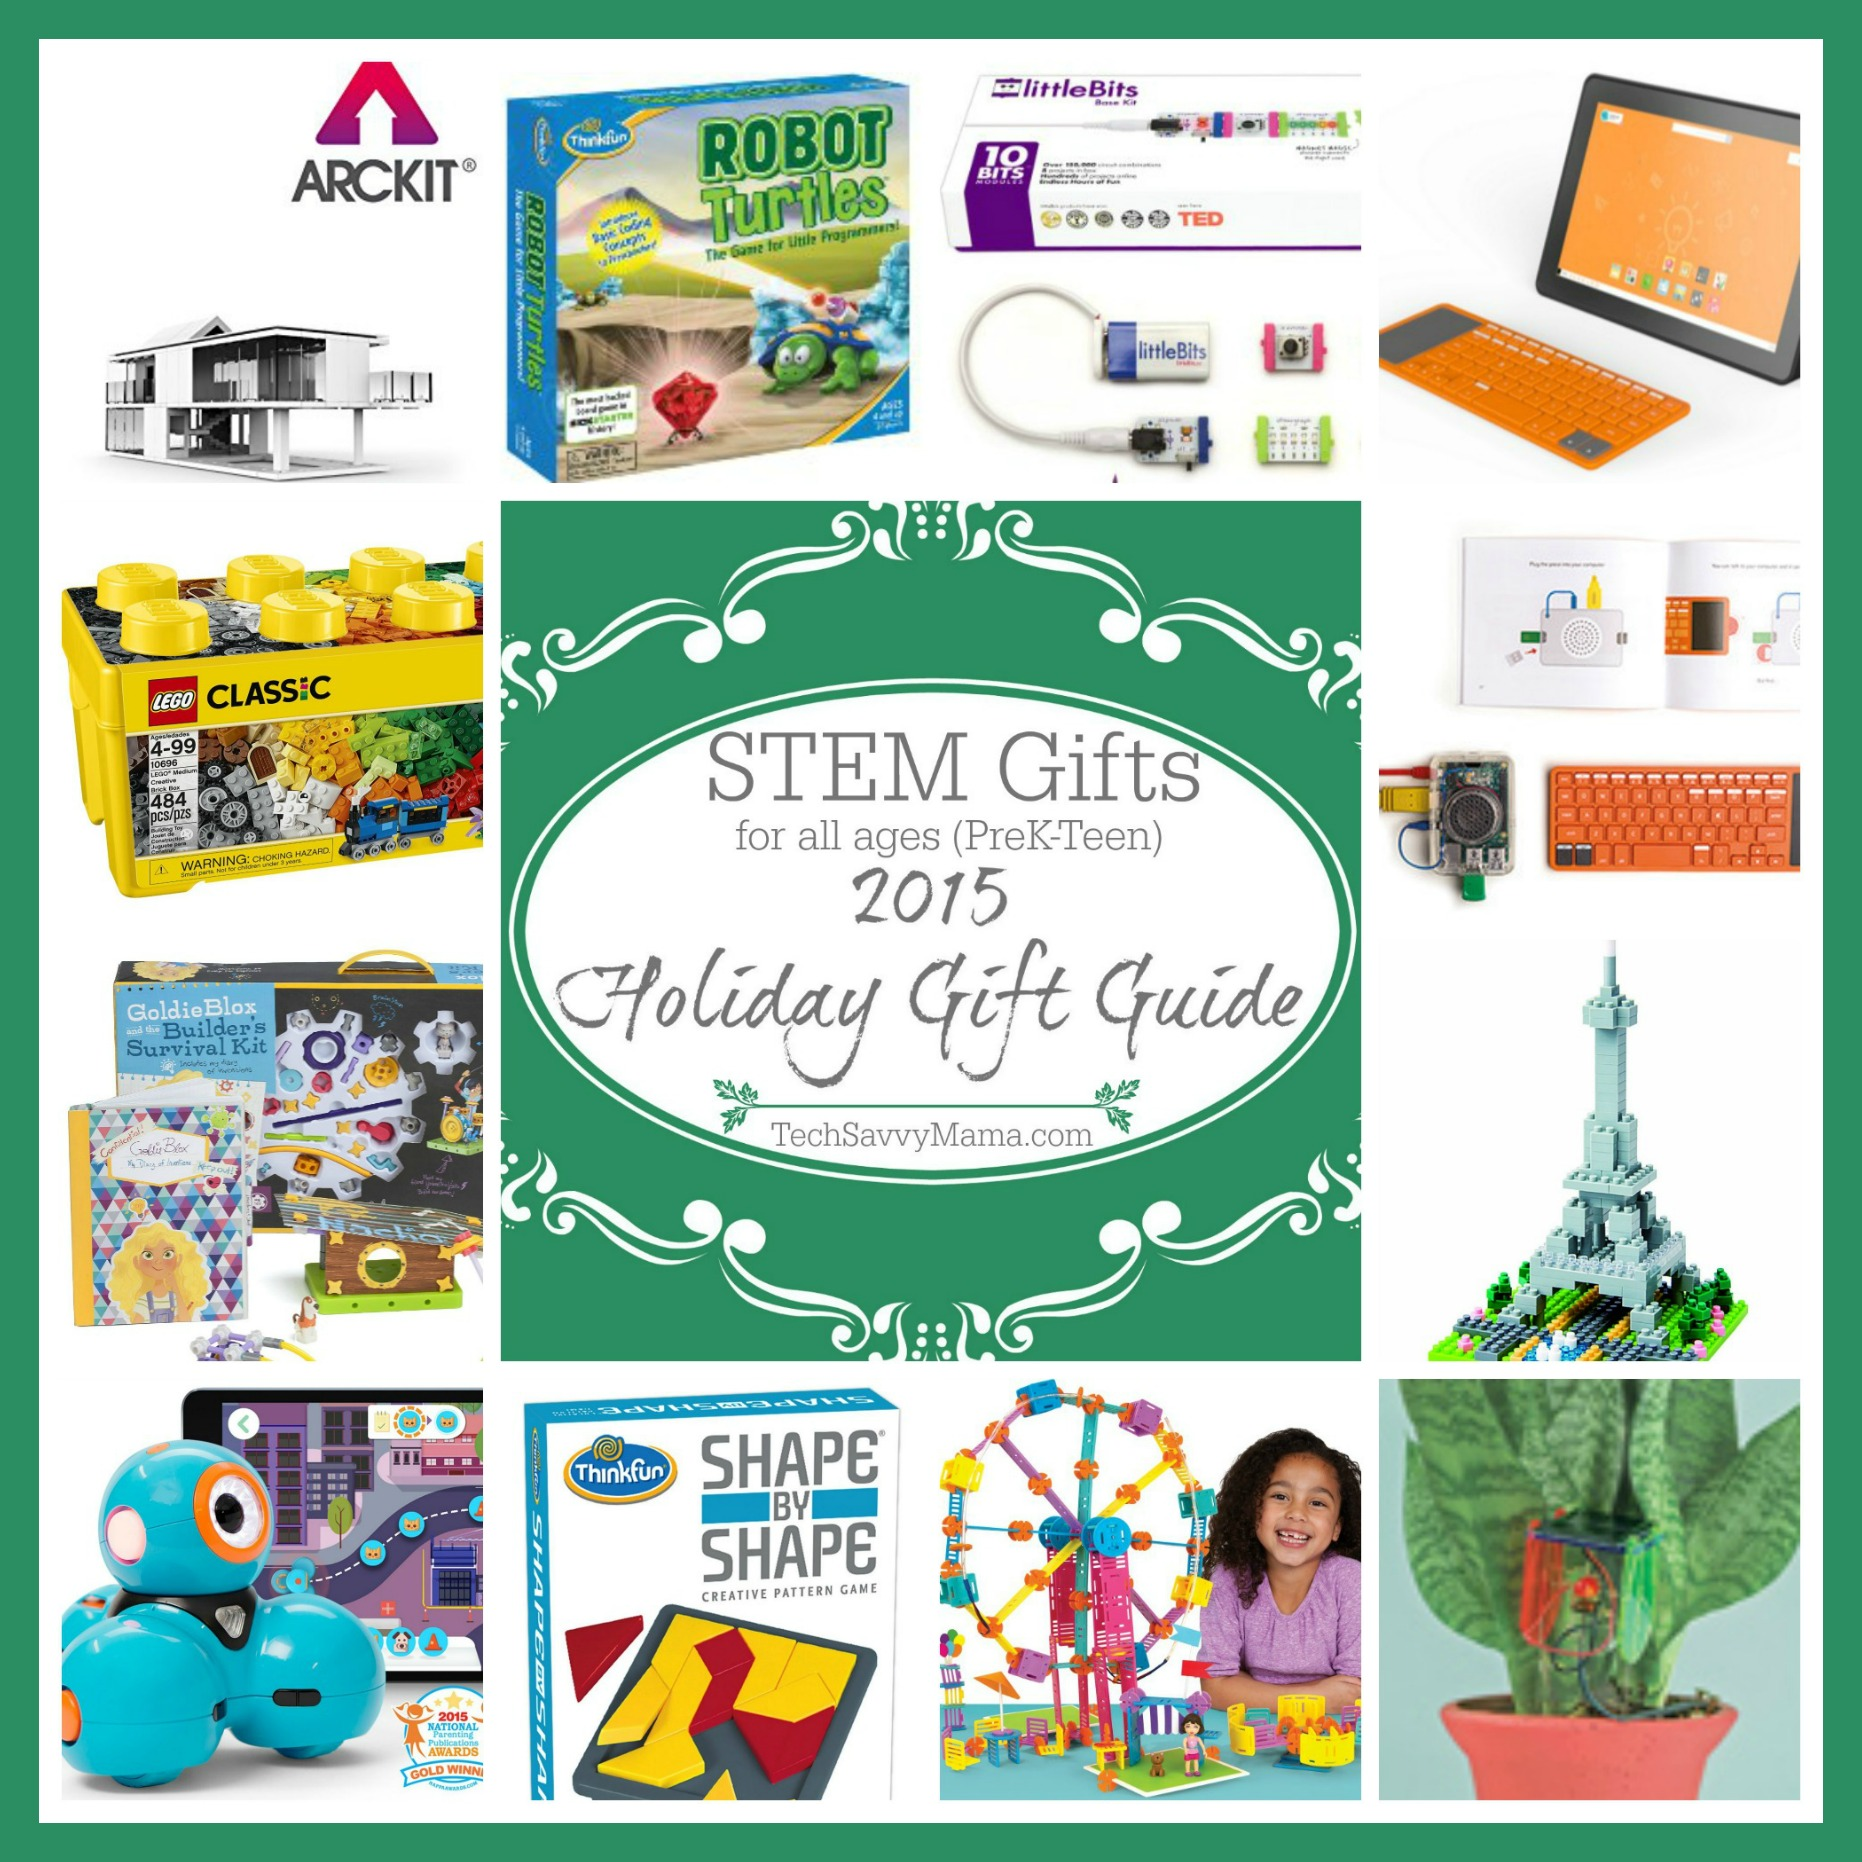 Christmas Gifts For 18 Year Old Boy: 2015 Gift Guide: STEM Gifts For All Ages (preK-teen